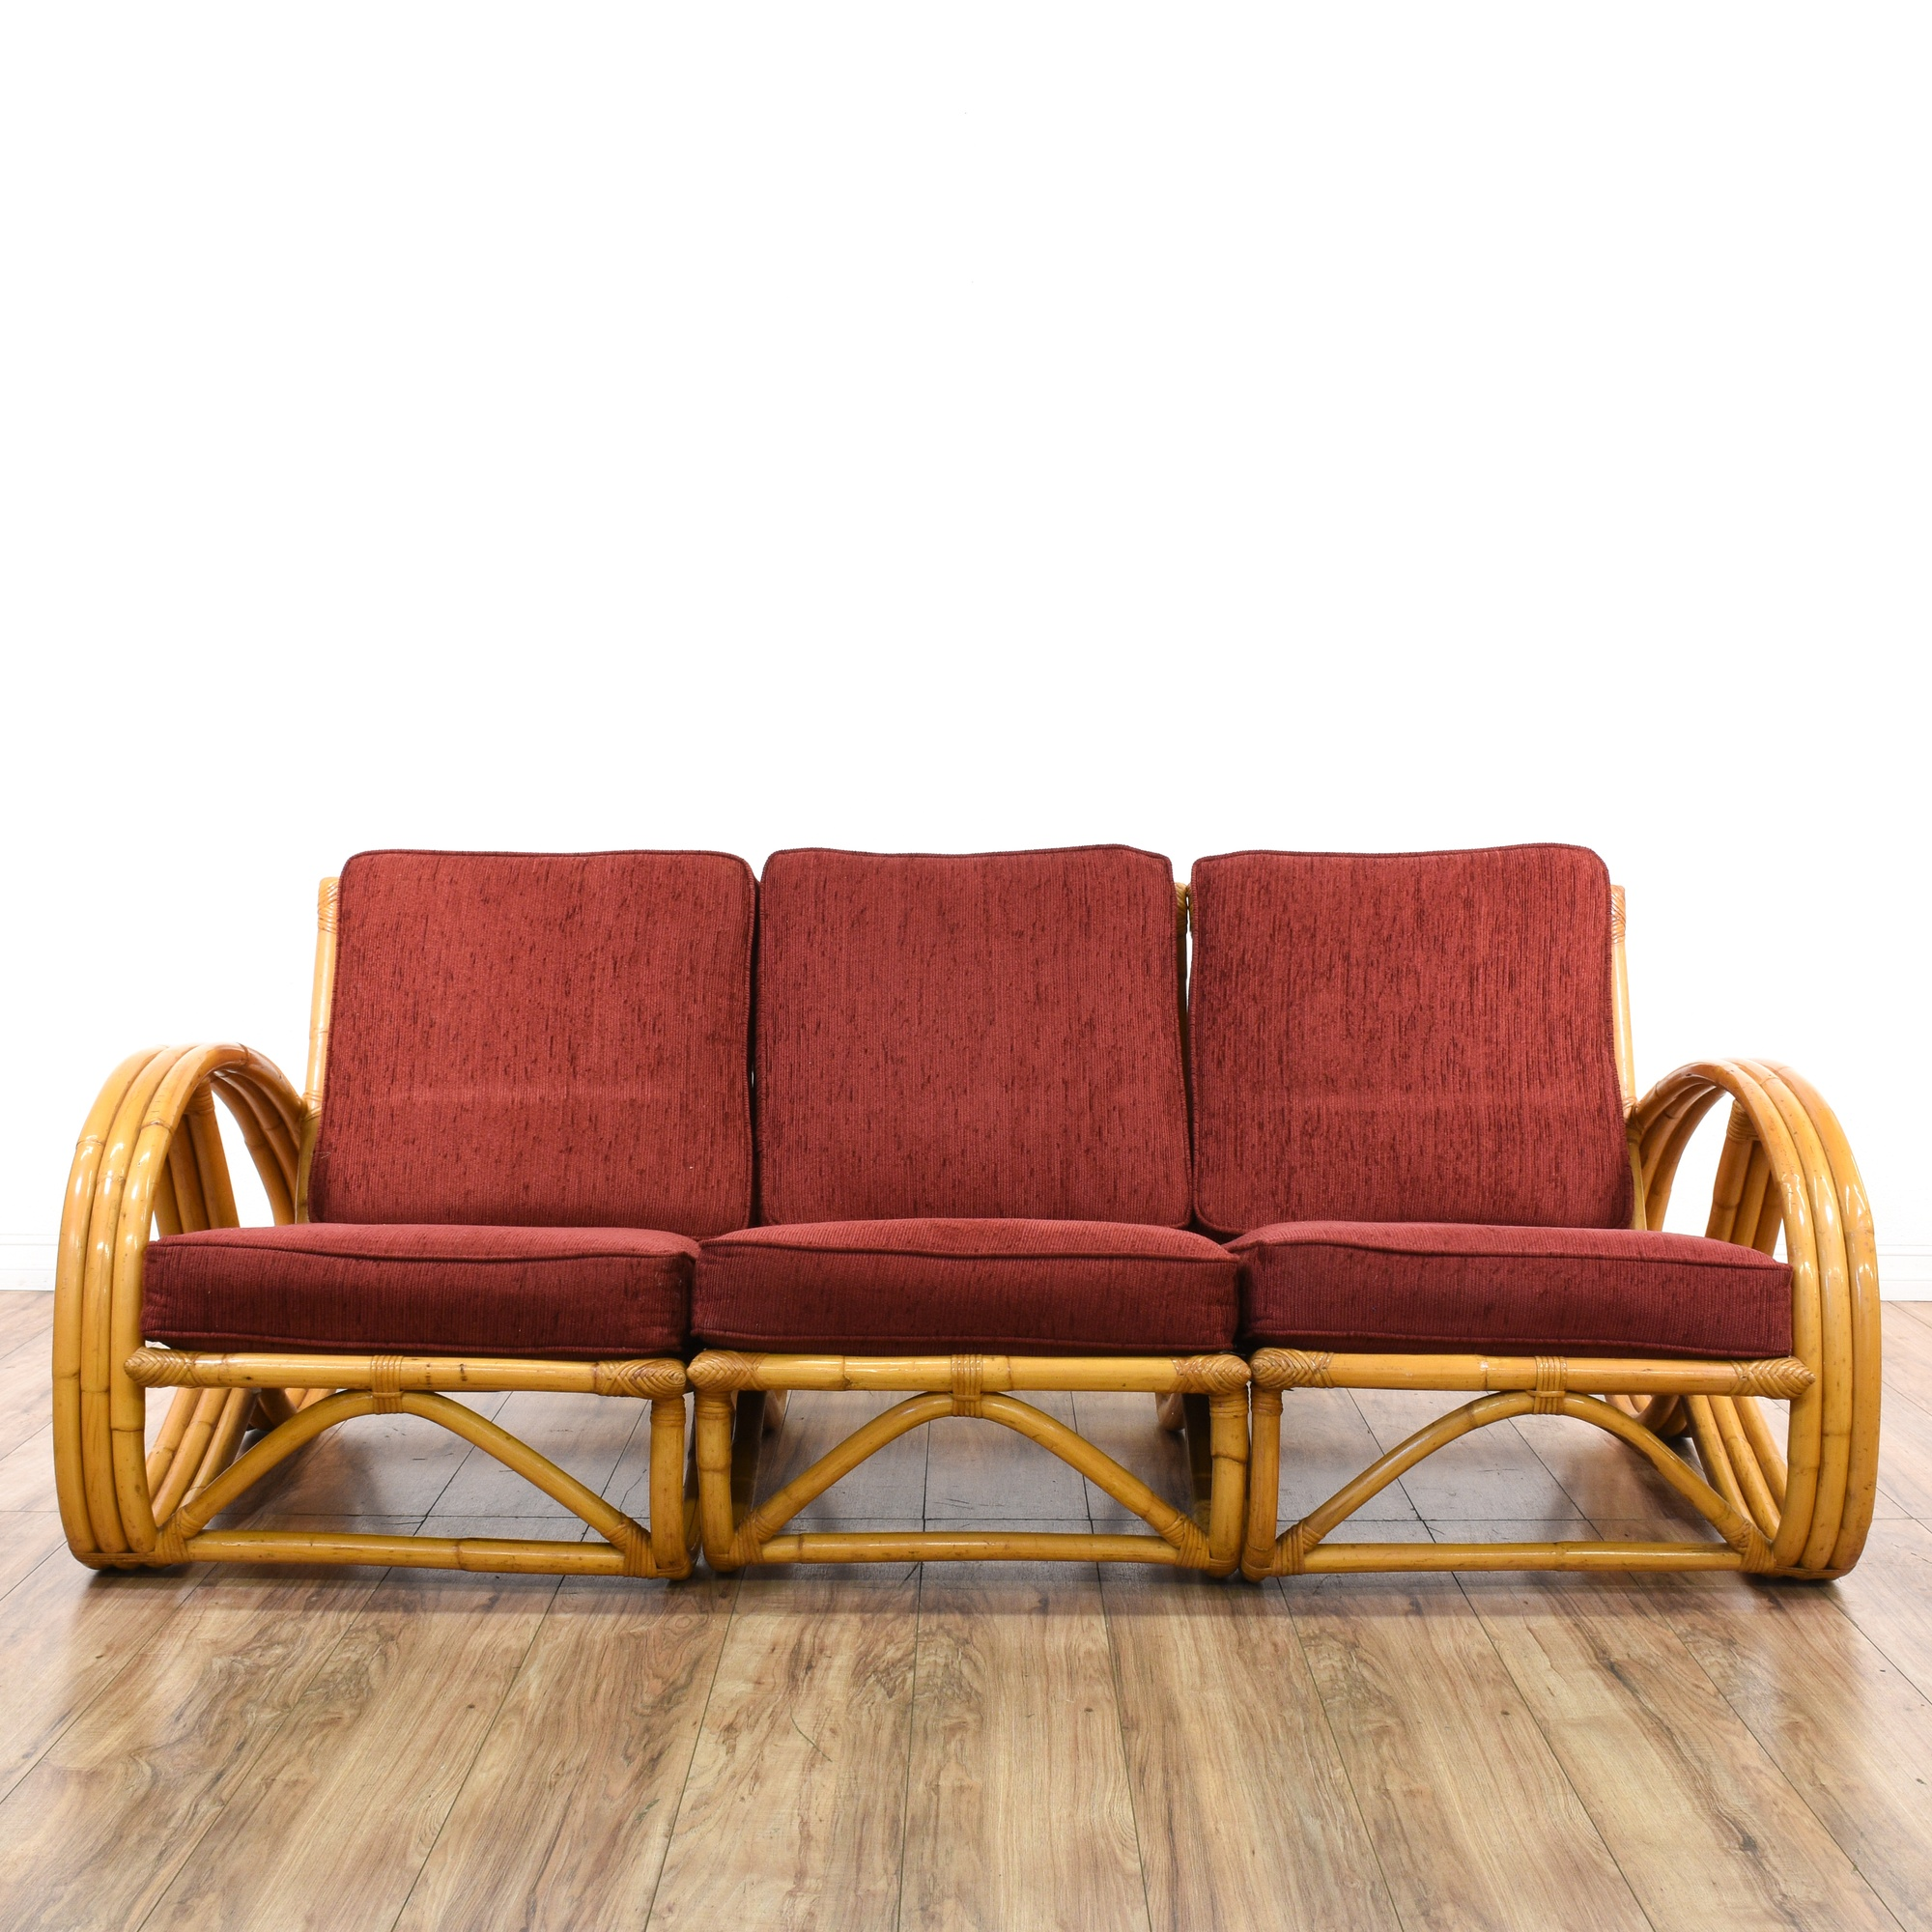 Paul Frankl Sofa ~ Piece paul frankl style rattan sofa loveseat vintage